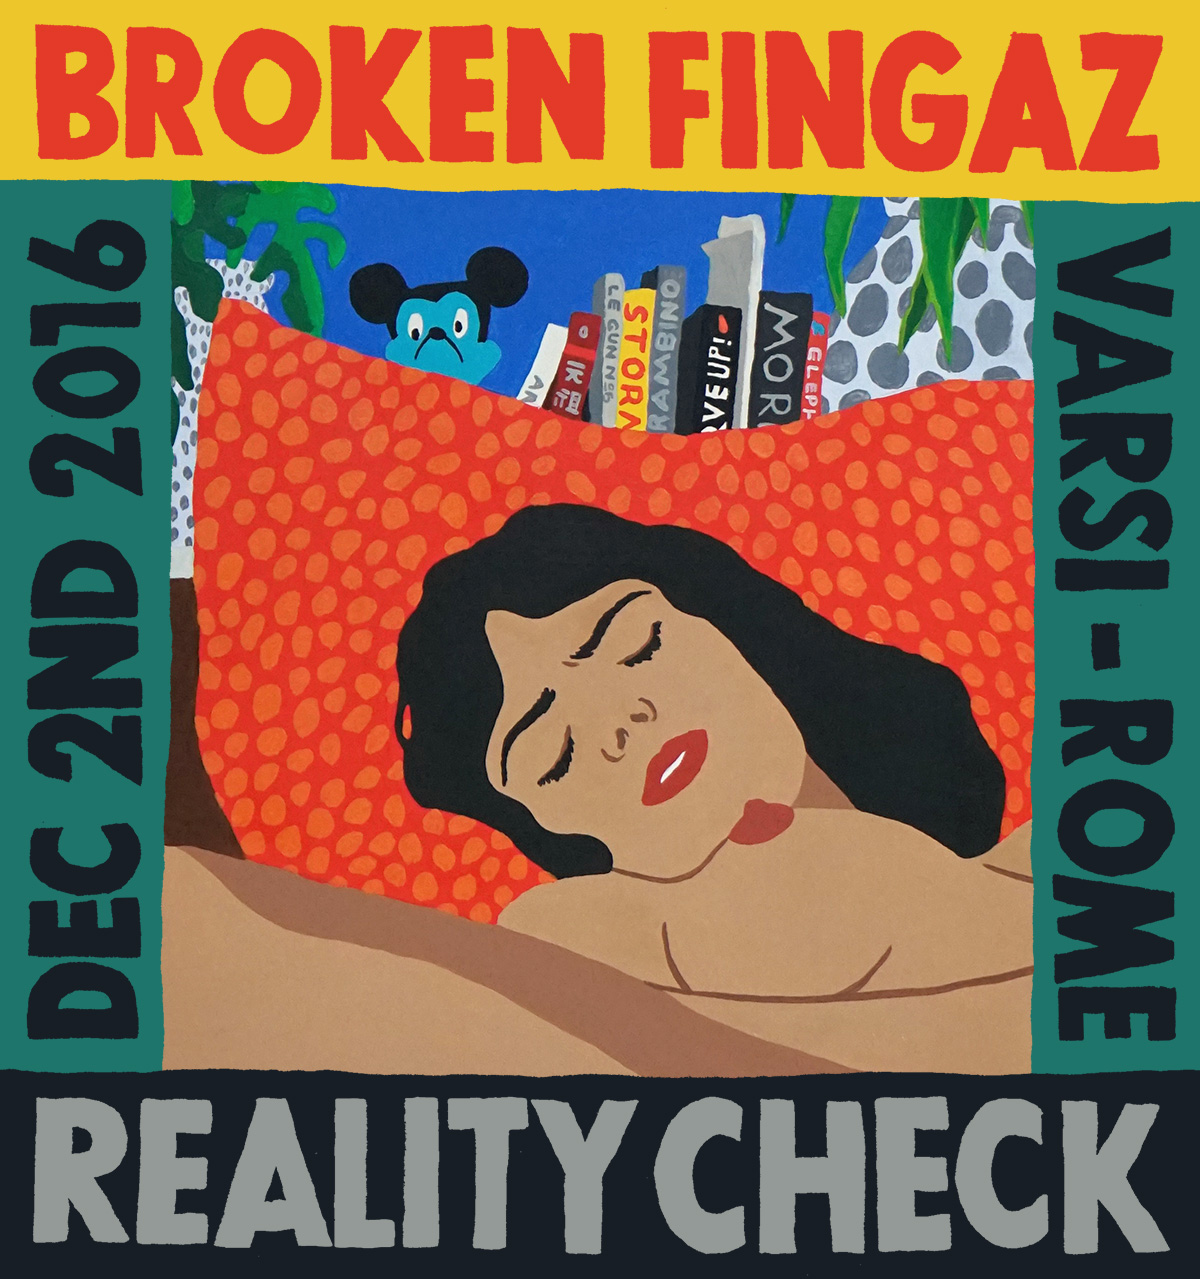 rome reality check broken fingaz deso tant unga graffiti street art germany israel haifa dusseldorf